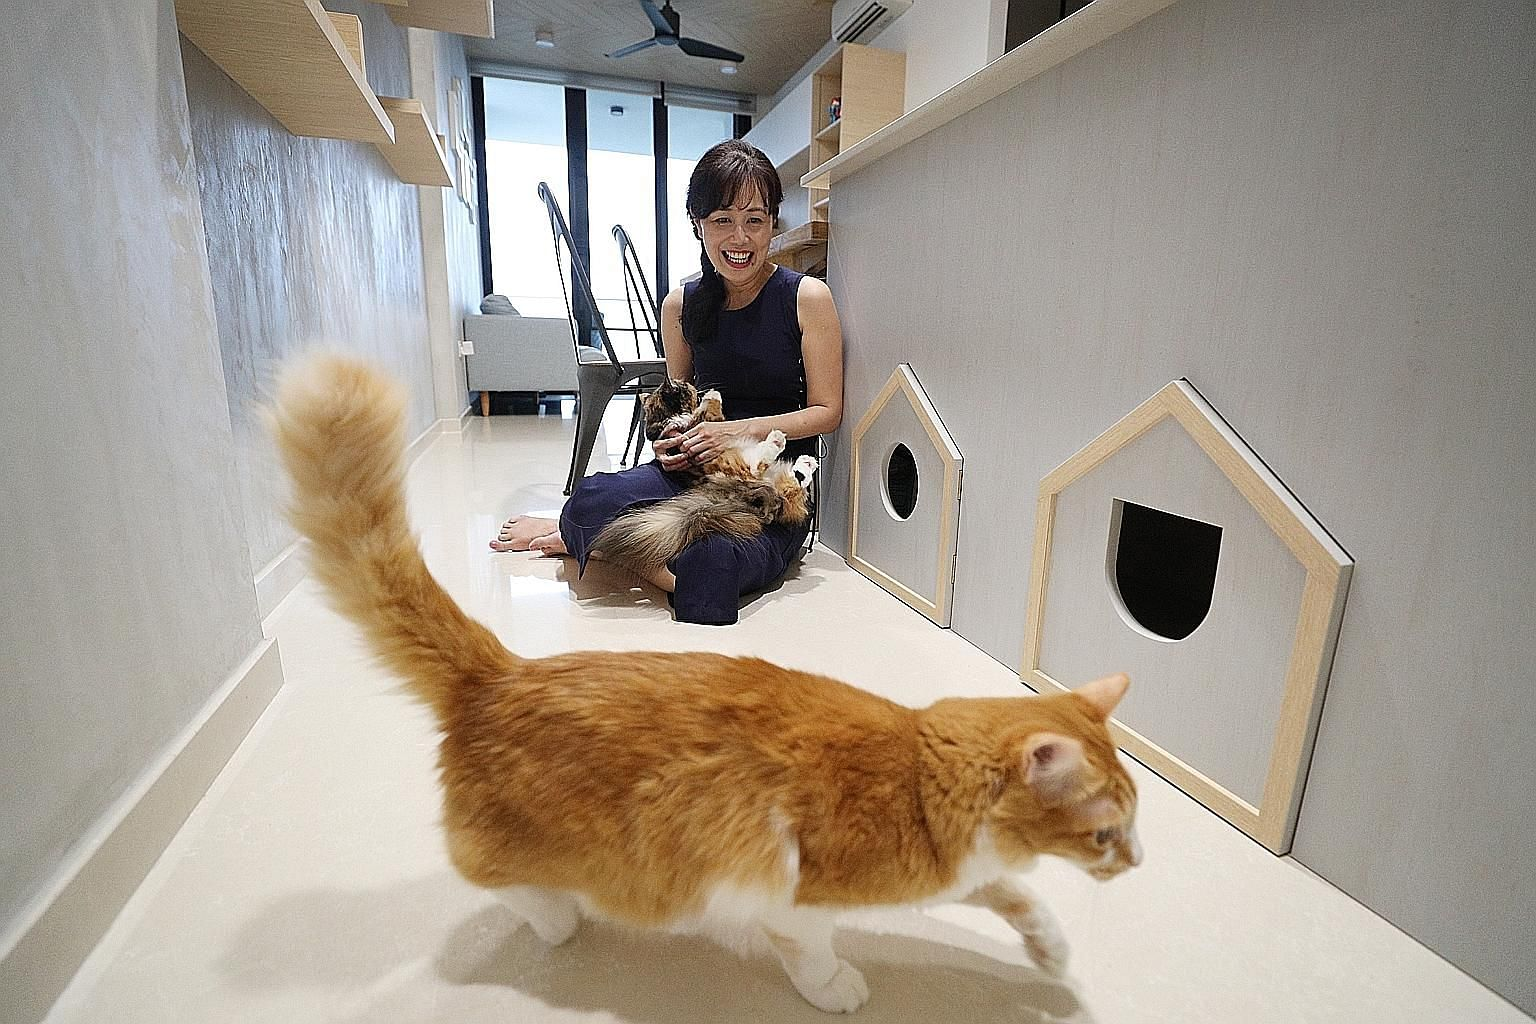 Veterinarian Teo Jenn Lin has a kennel that doubles as a shoe bench (above) and a loft bed with hollowed-out steps as cosy nooks for her shih tzus, Guppy and Squid. Civil servant Yvonne Chan with two of her four adopted cats, Pumpkin and Robin. She h